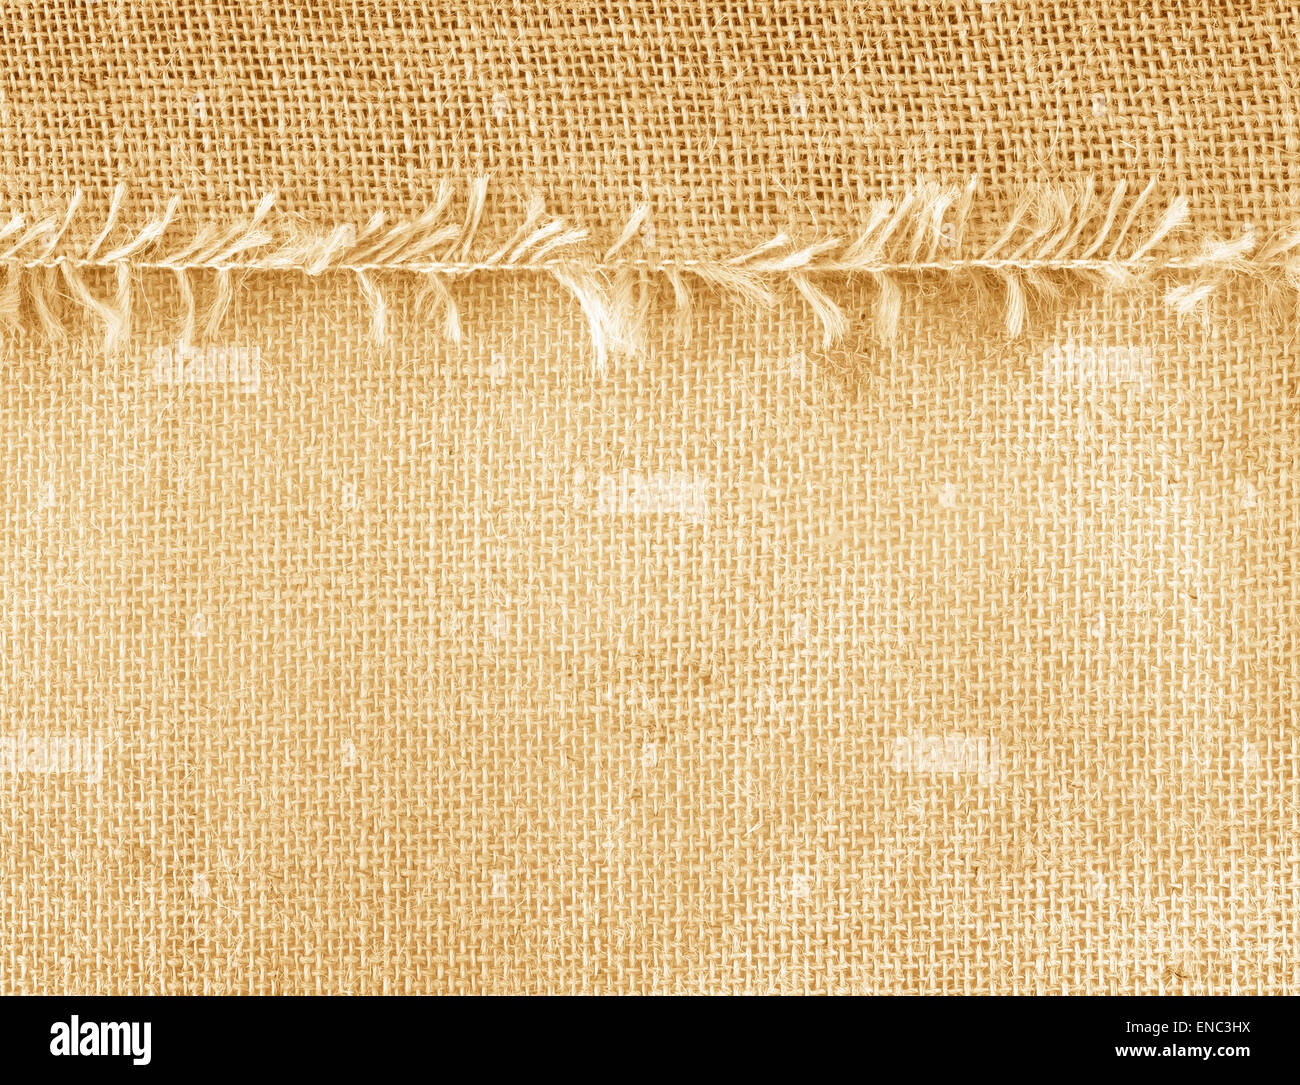 Textile Sacks brown abstract pattern background texture. - Stock Image